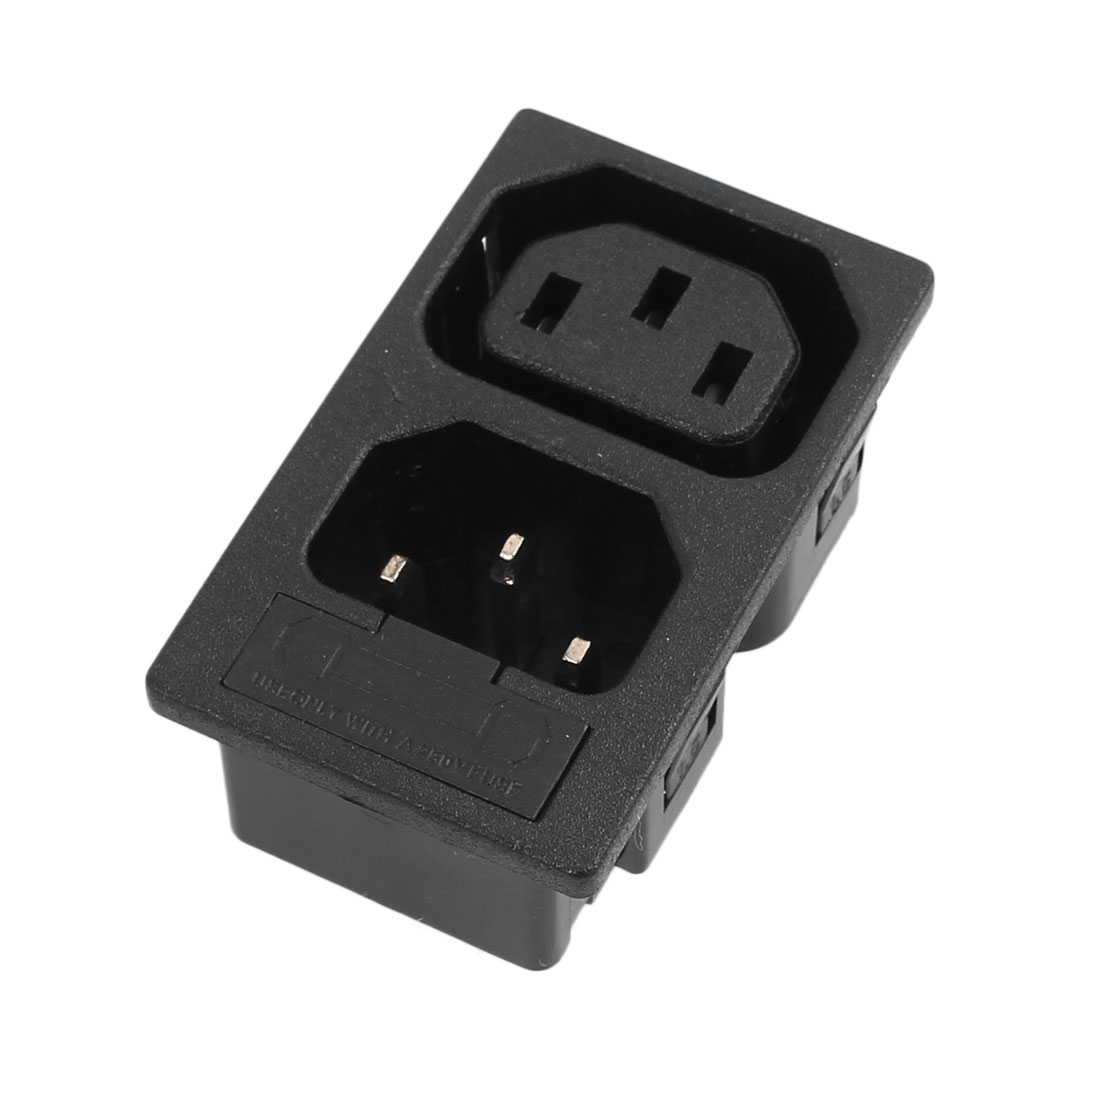 10A AC 250V Inlet Male And Female Power Socket with Fuse Switch 3 Pin IEC320 C14 Black